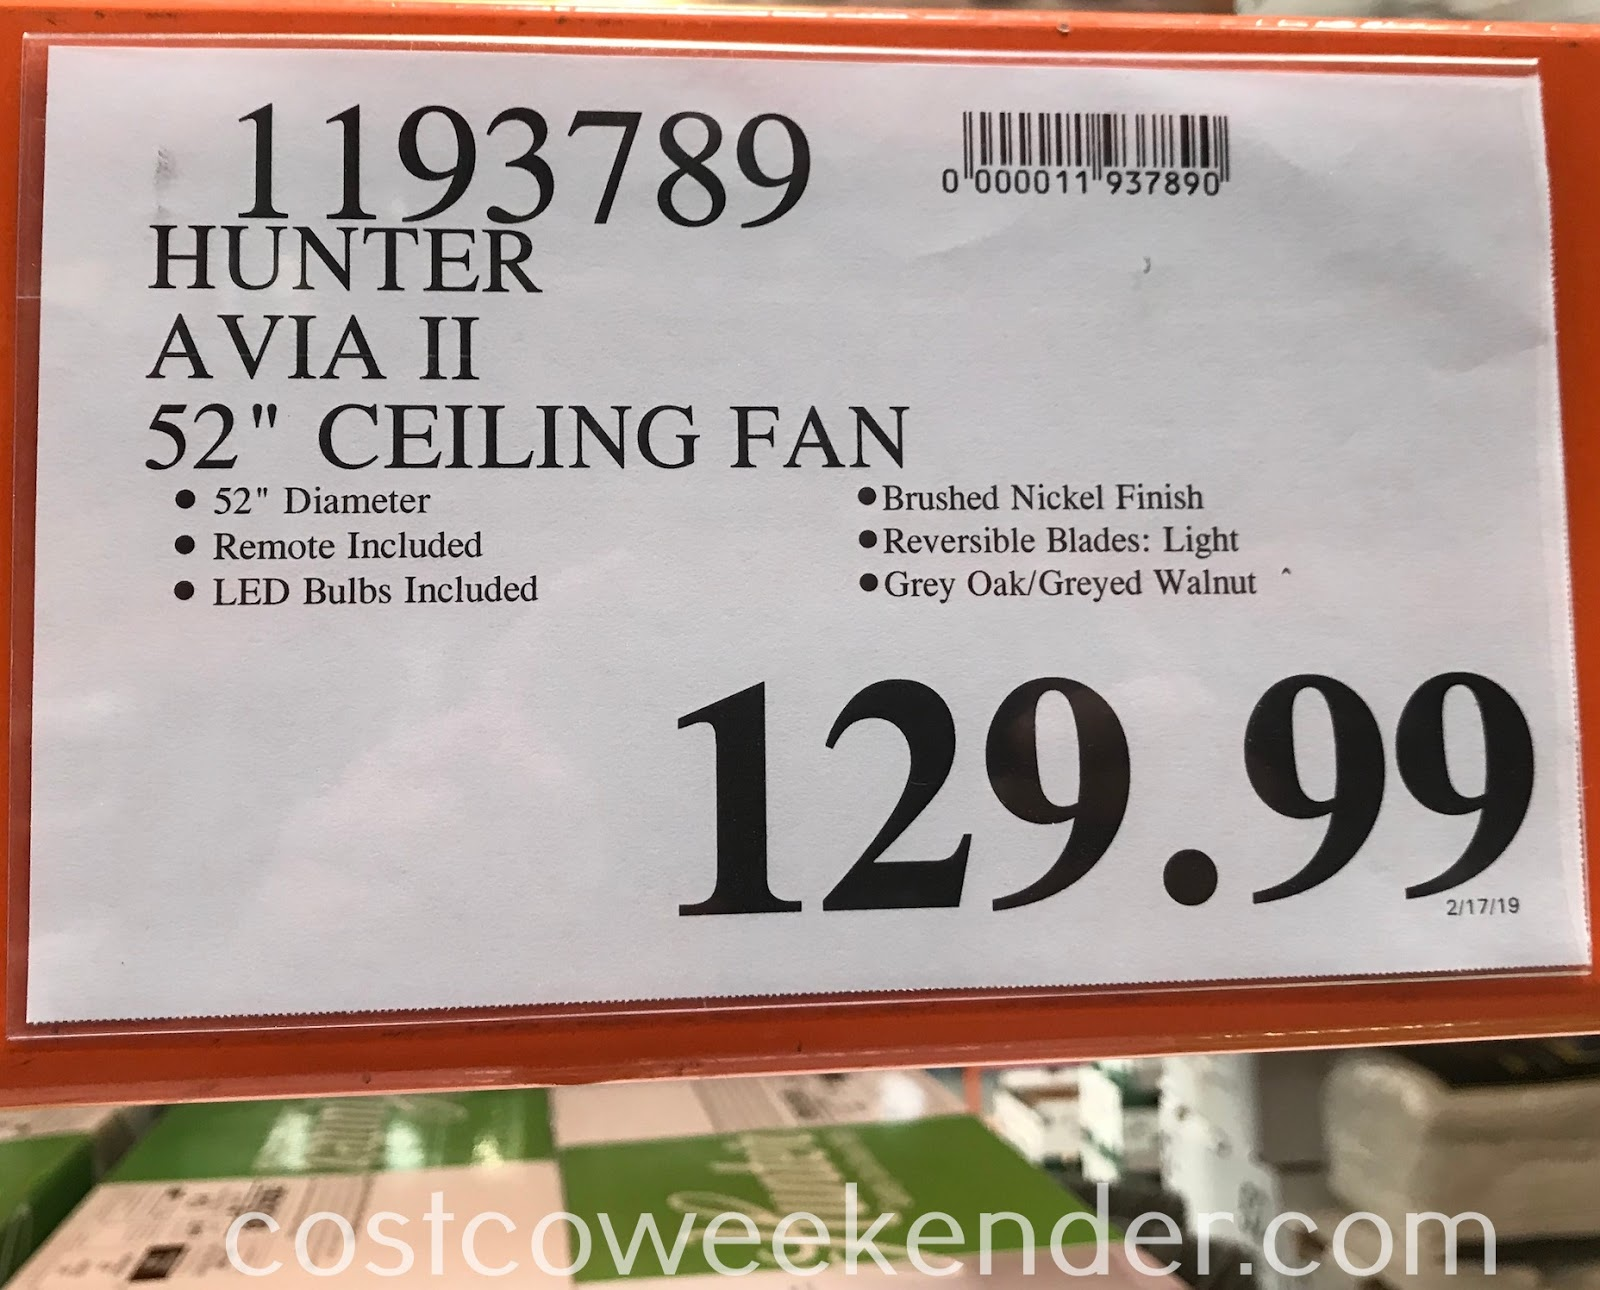 Deal for the Hunter Avia II Ceiling Fan at Costco